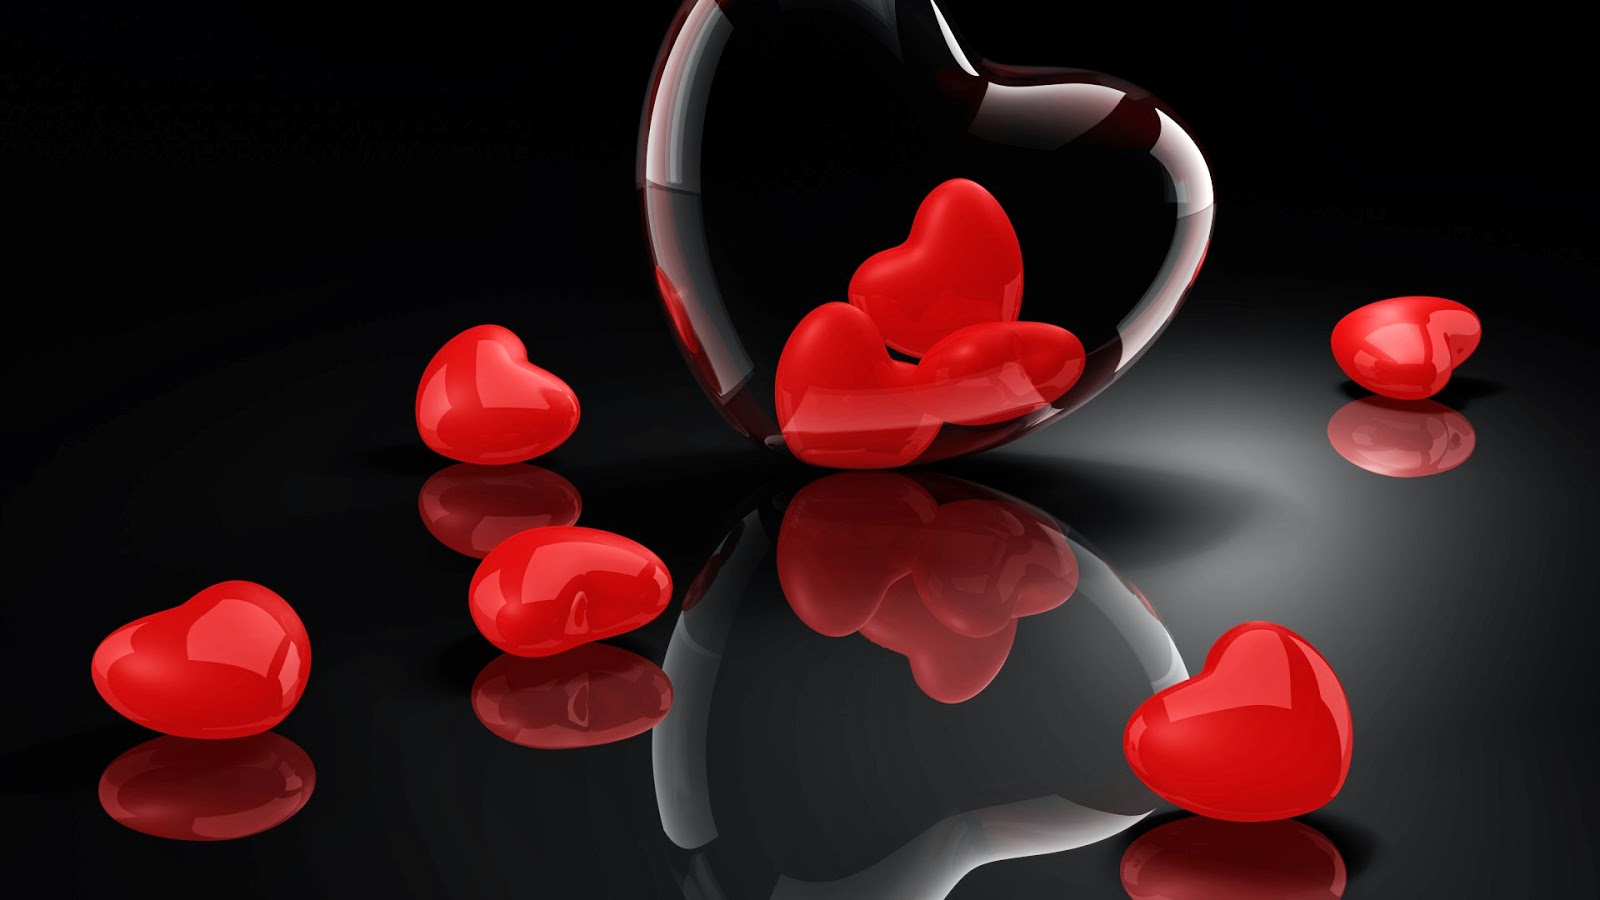 Cute Valentine's Day Images | HD Wallpapers, HD Pictures ...